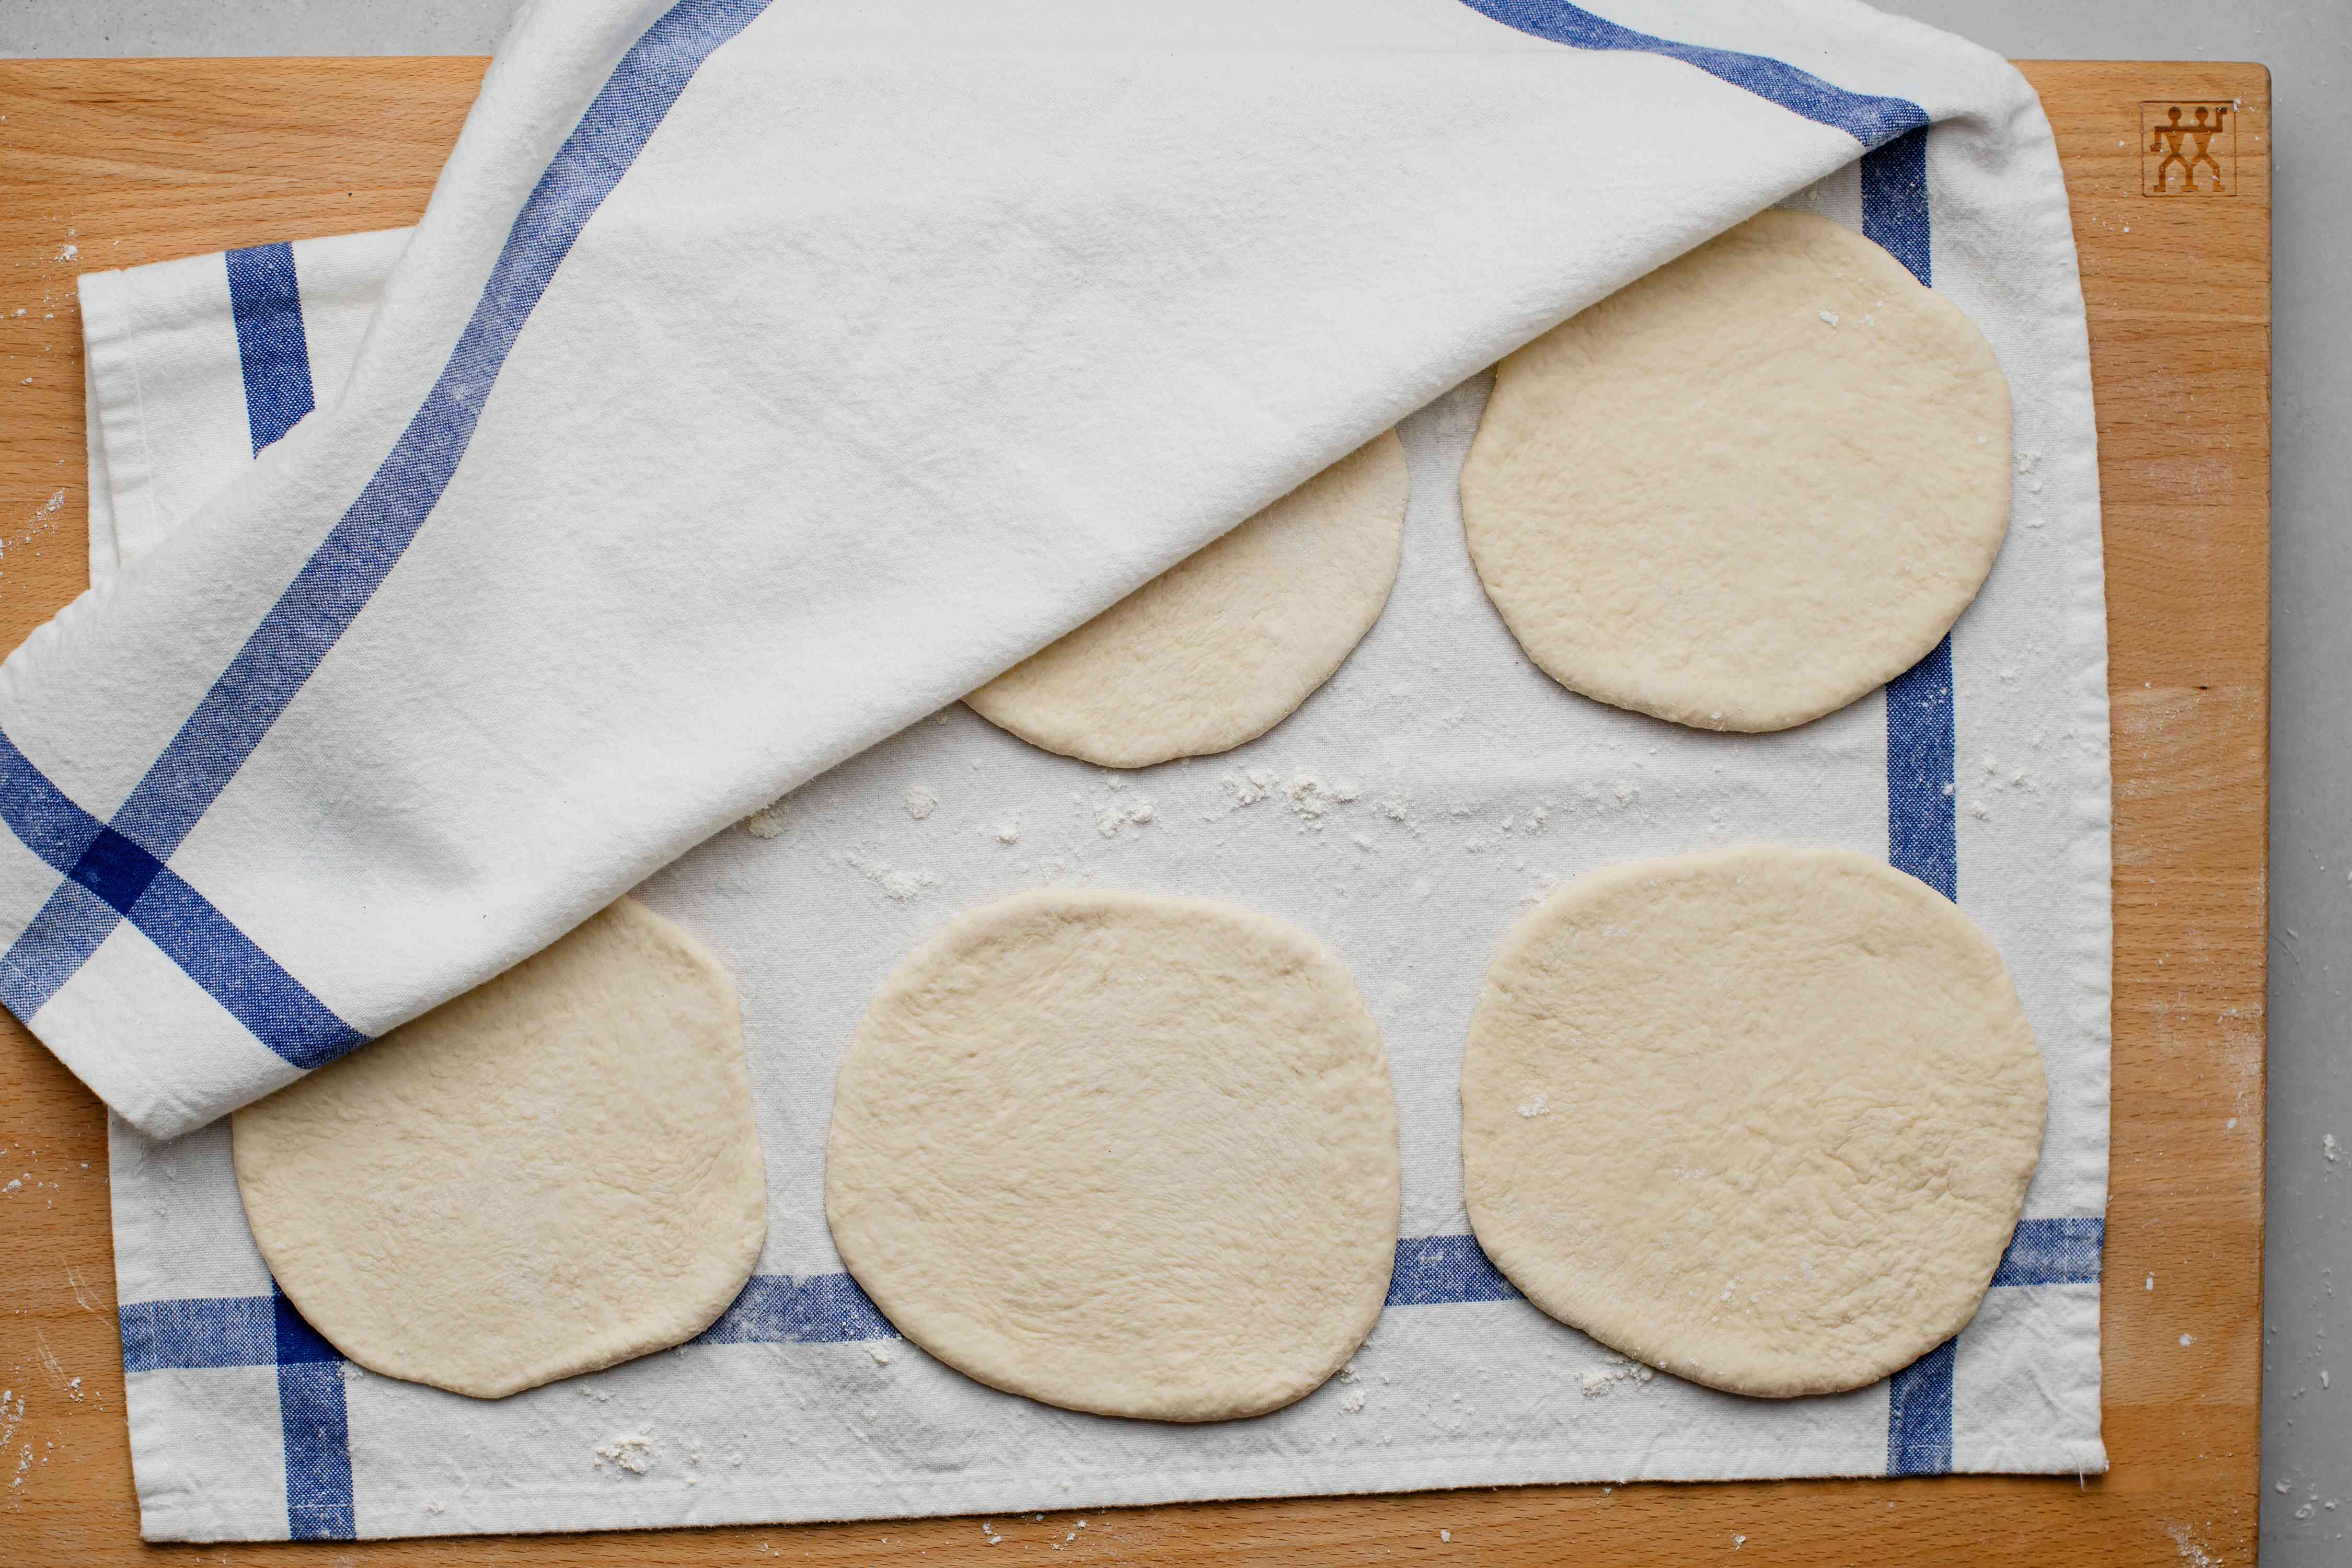 rolled out dough pieces between floured towels